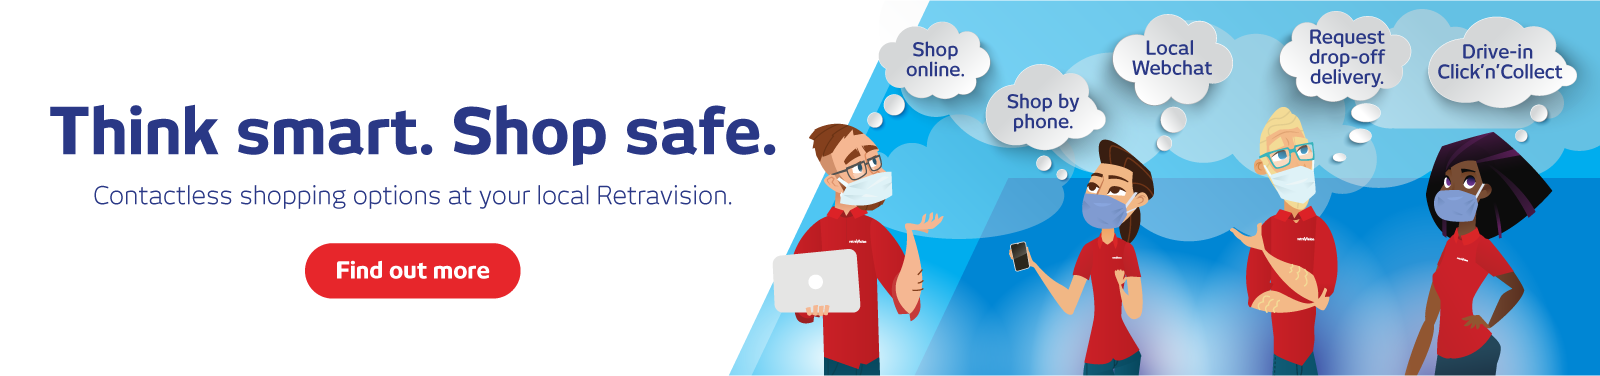 Covid-19 Updates - Shop Safe At Retravision